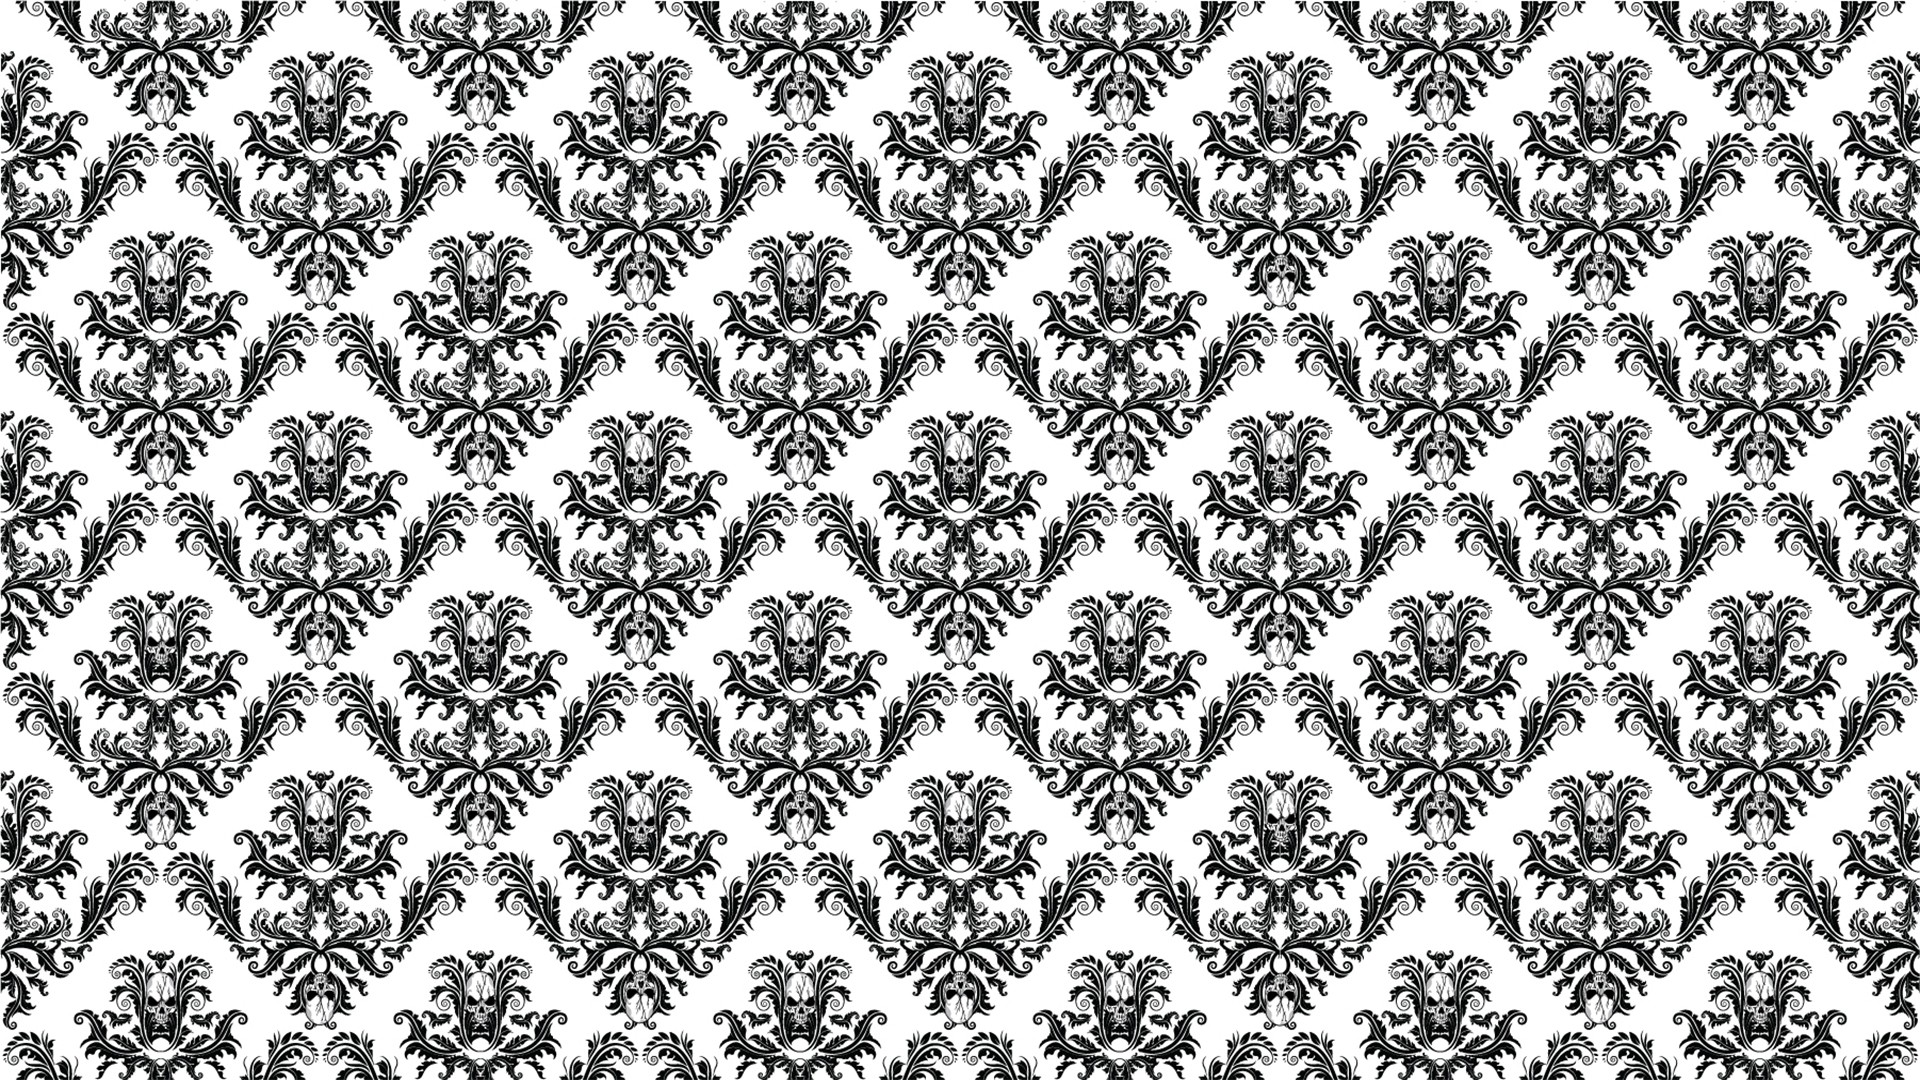 Black And White Floral PC Wallpaper